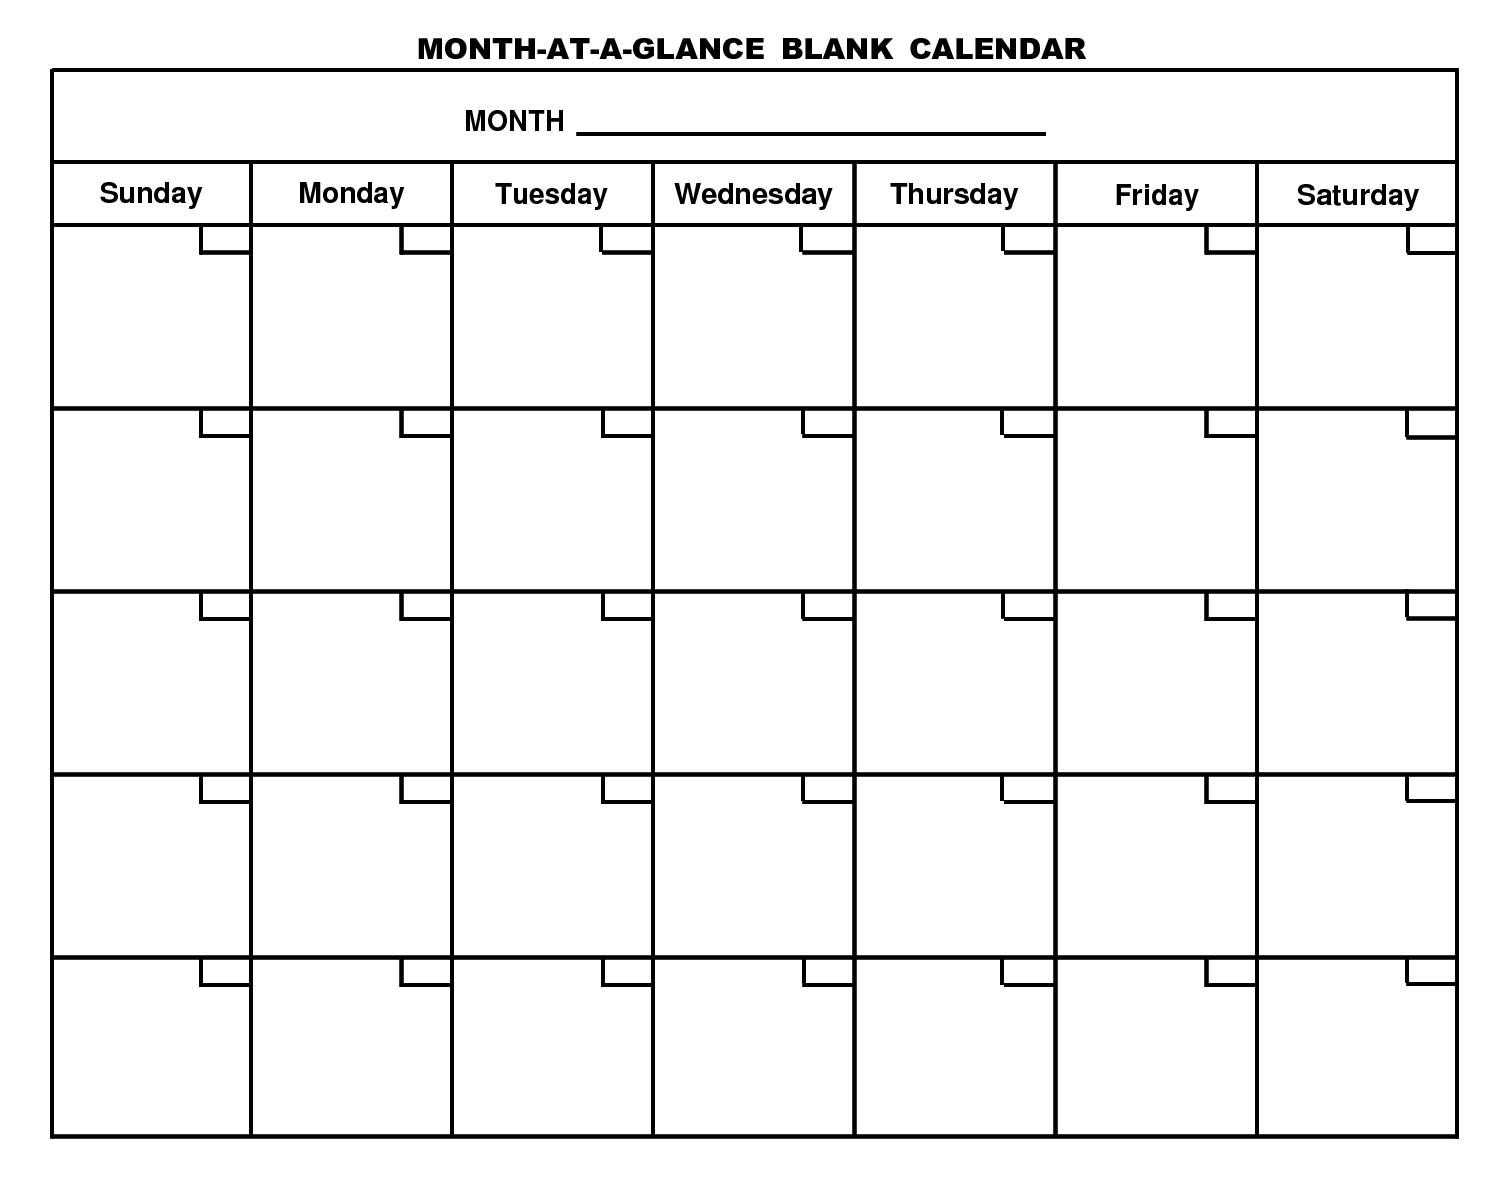 Free-Printable-Month-At-A-Glance-Blank-Calendar (1506